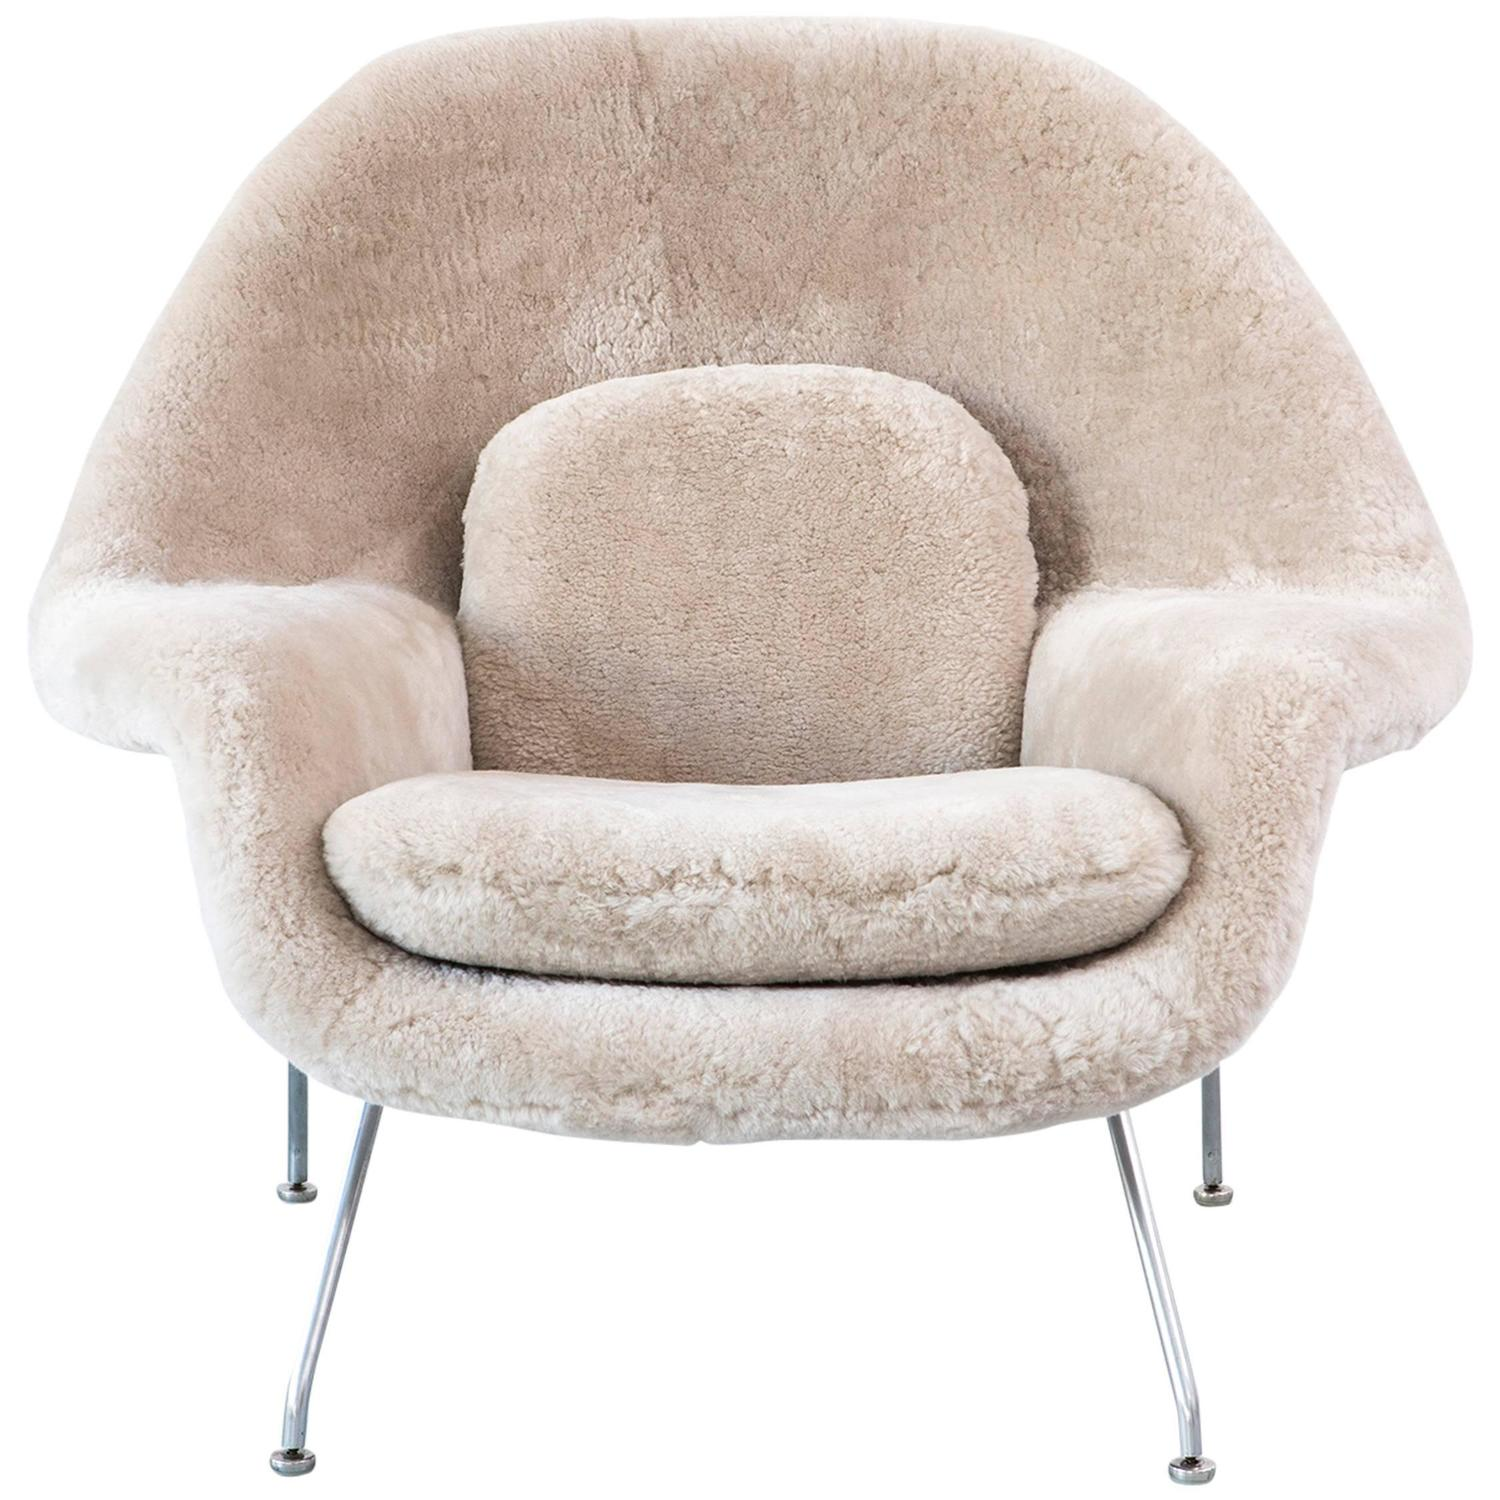 Saarinen Mid Century Modern Womb Chair by Knoll Reupholstered in